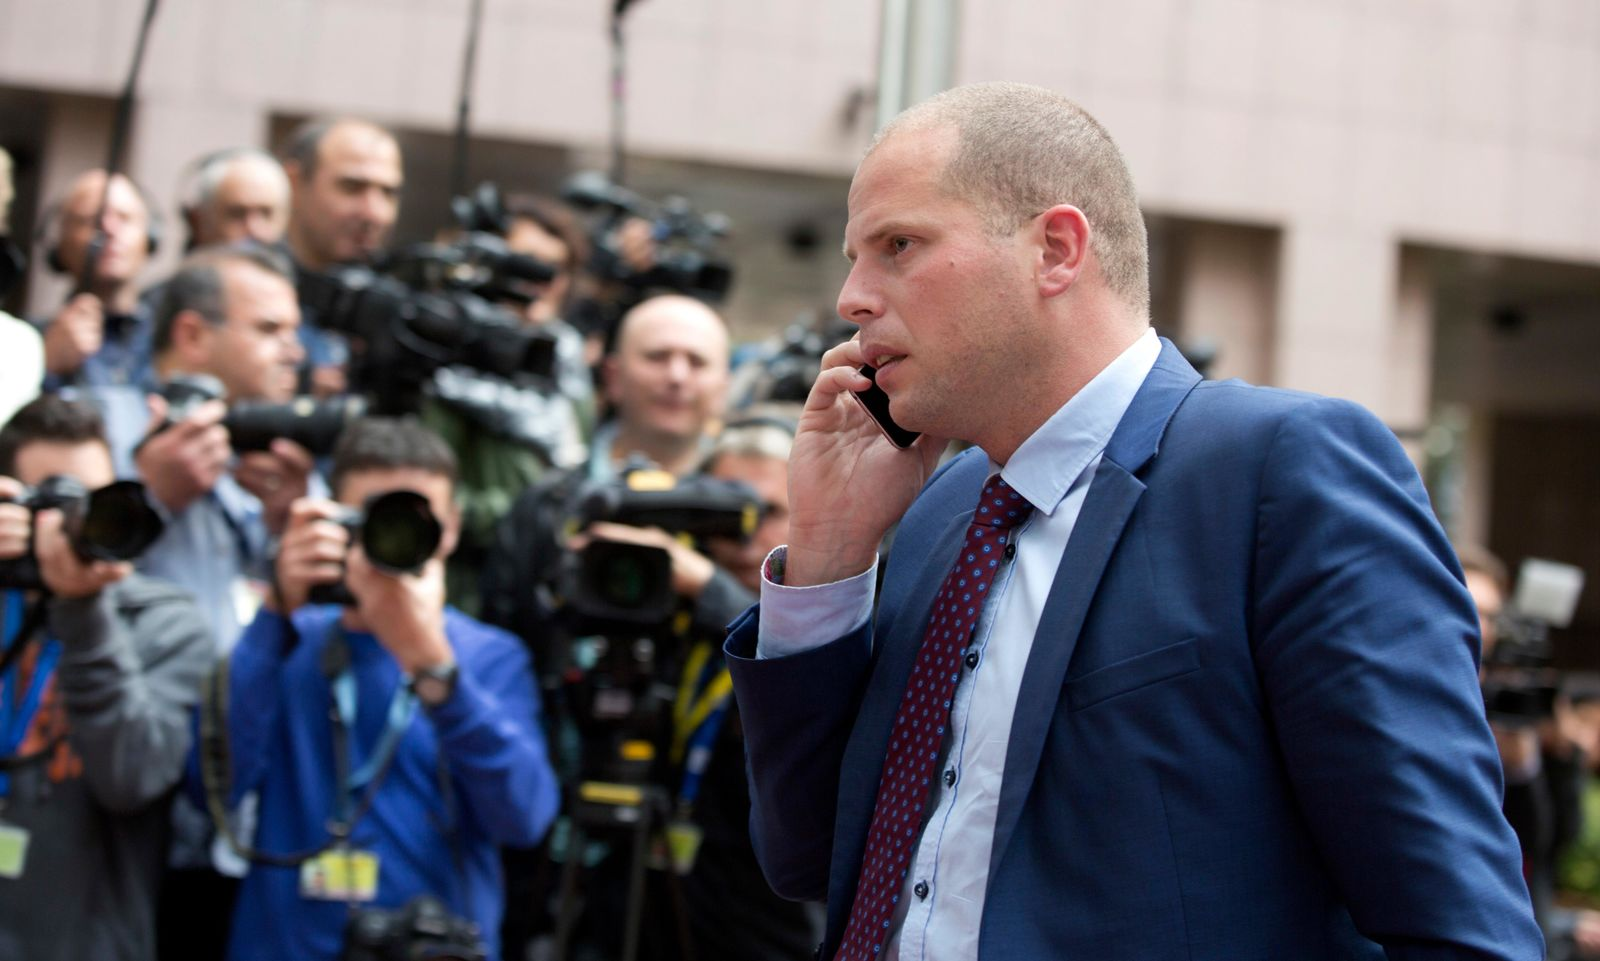 In this Monday, Sept. 14, 2015 file photo, Belgium's State Secretatry for Asylum Policy and Migration Theo Francken arrives for a meeting of EU justice and interior ministers at the EU Council building in Brussels. AP Photo/Virginia Mayo, File)